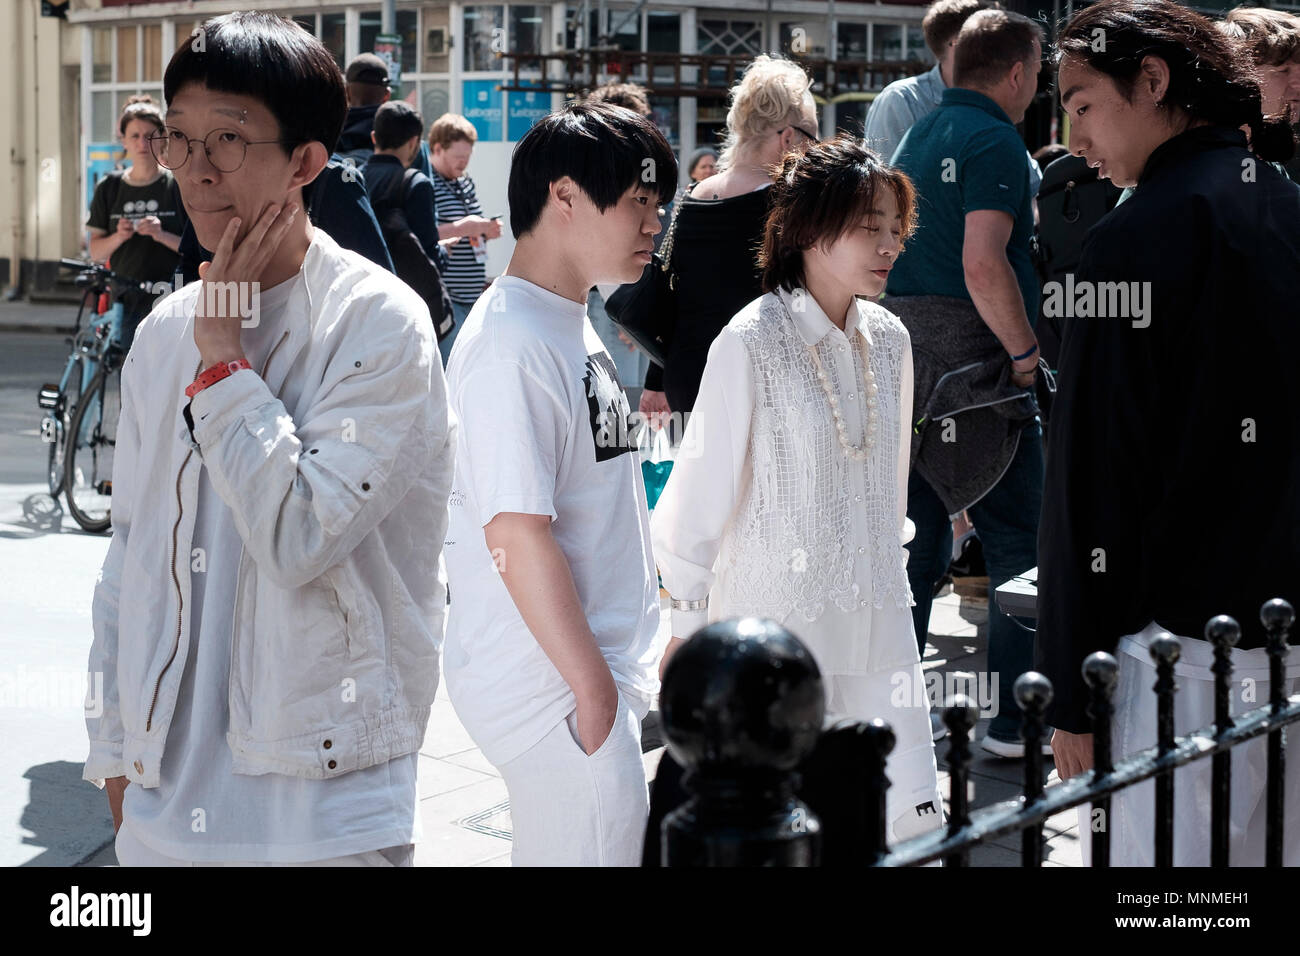 Brighton, UK. 17th May, 2018. The wait behind the scenes for the South Koreans of the band 'In The Endless Zanhyang We Are'  outside The East Street Tap venue as part of 'The Alternative Escape' on the first day of The Great Escape Festival 2018Credit: Scott Hortop Travel/Alamy Live News - Stock Image